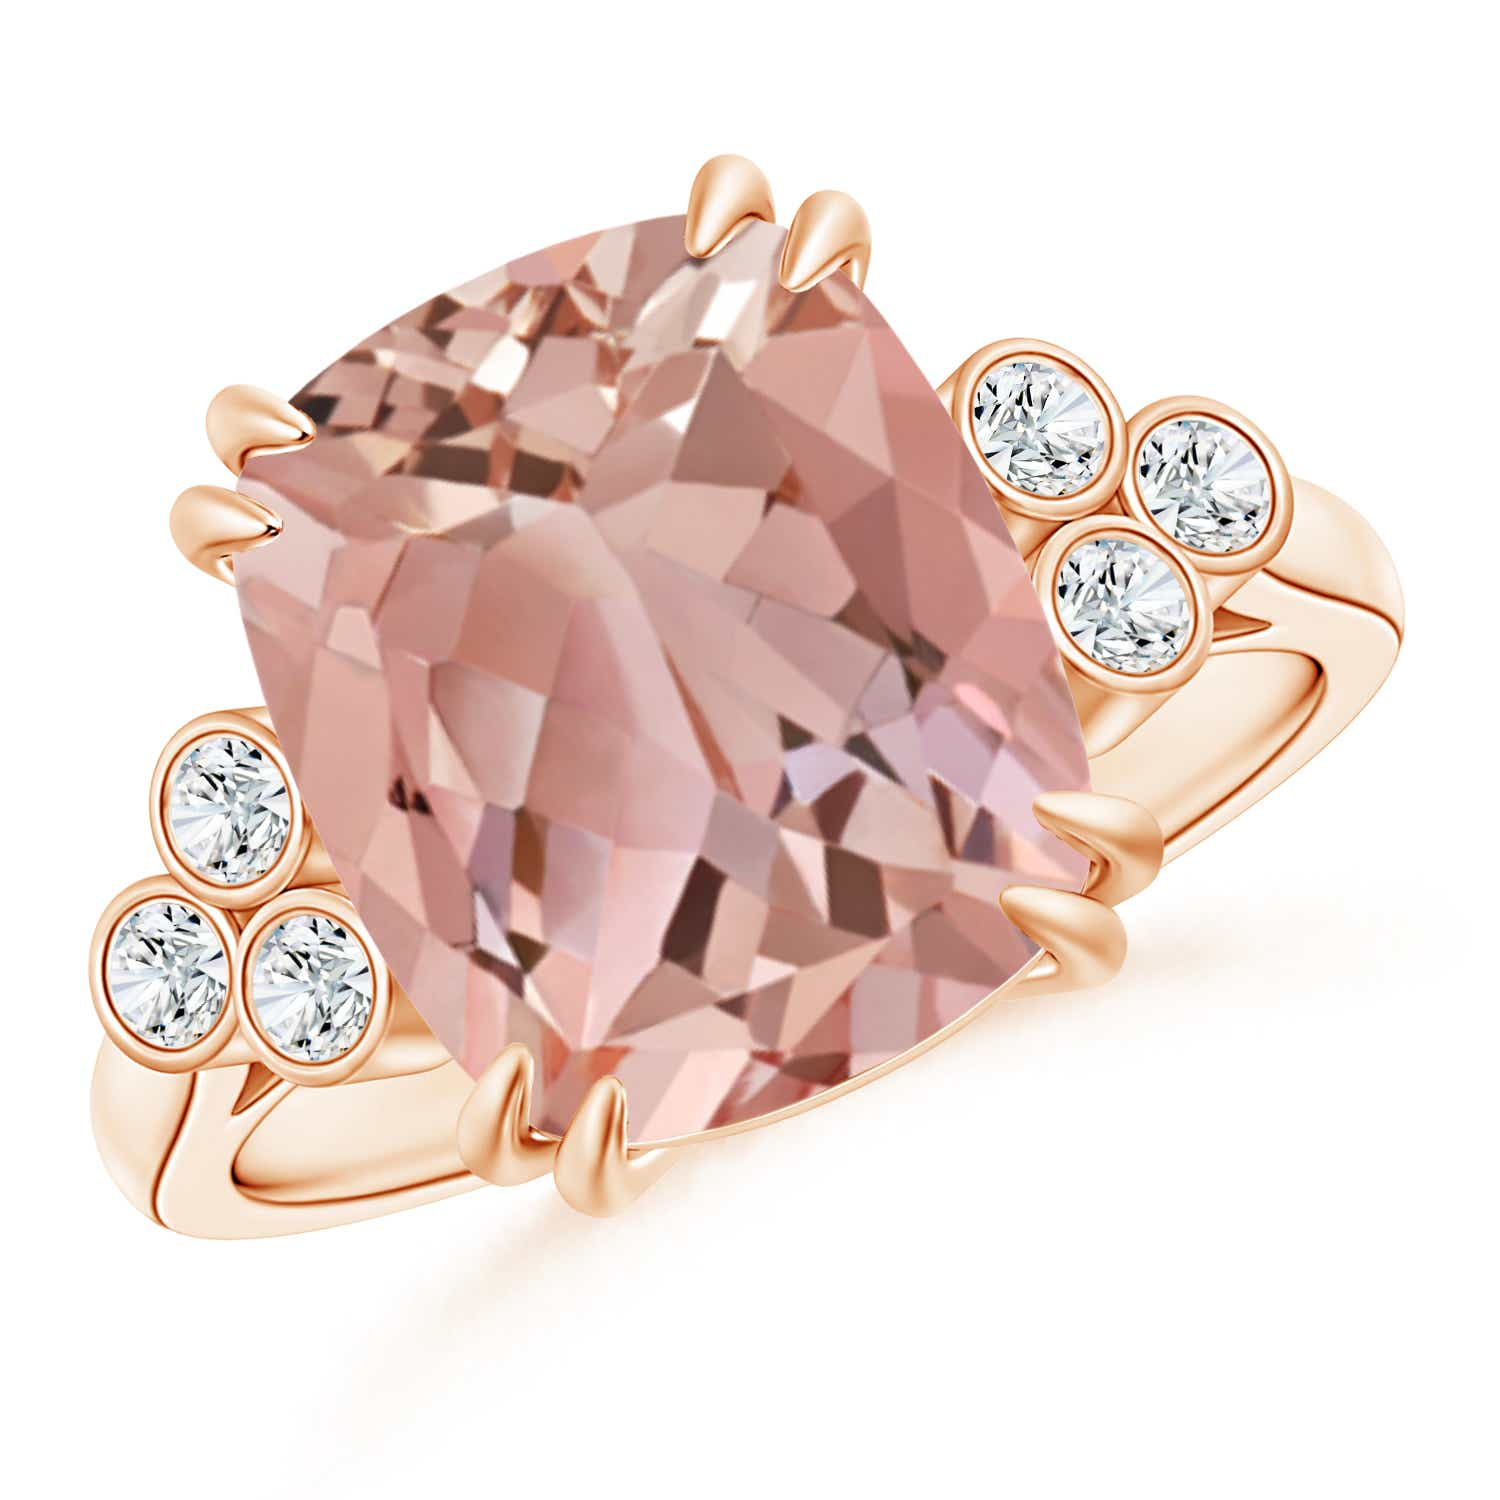 Cushion Morganite Ring with Trio Bezel Diamonds | Angara